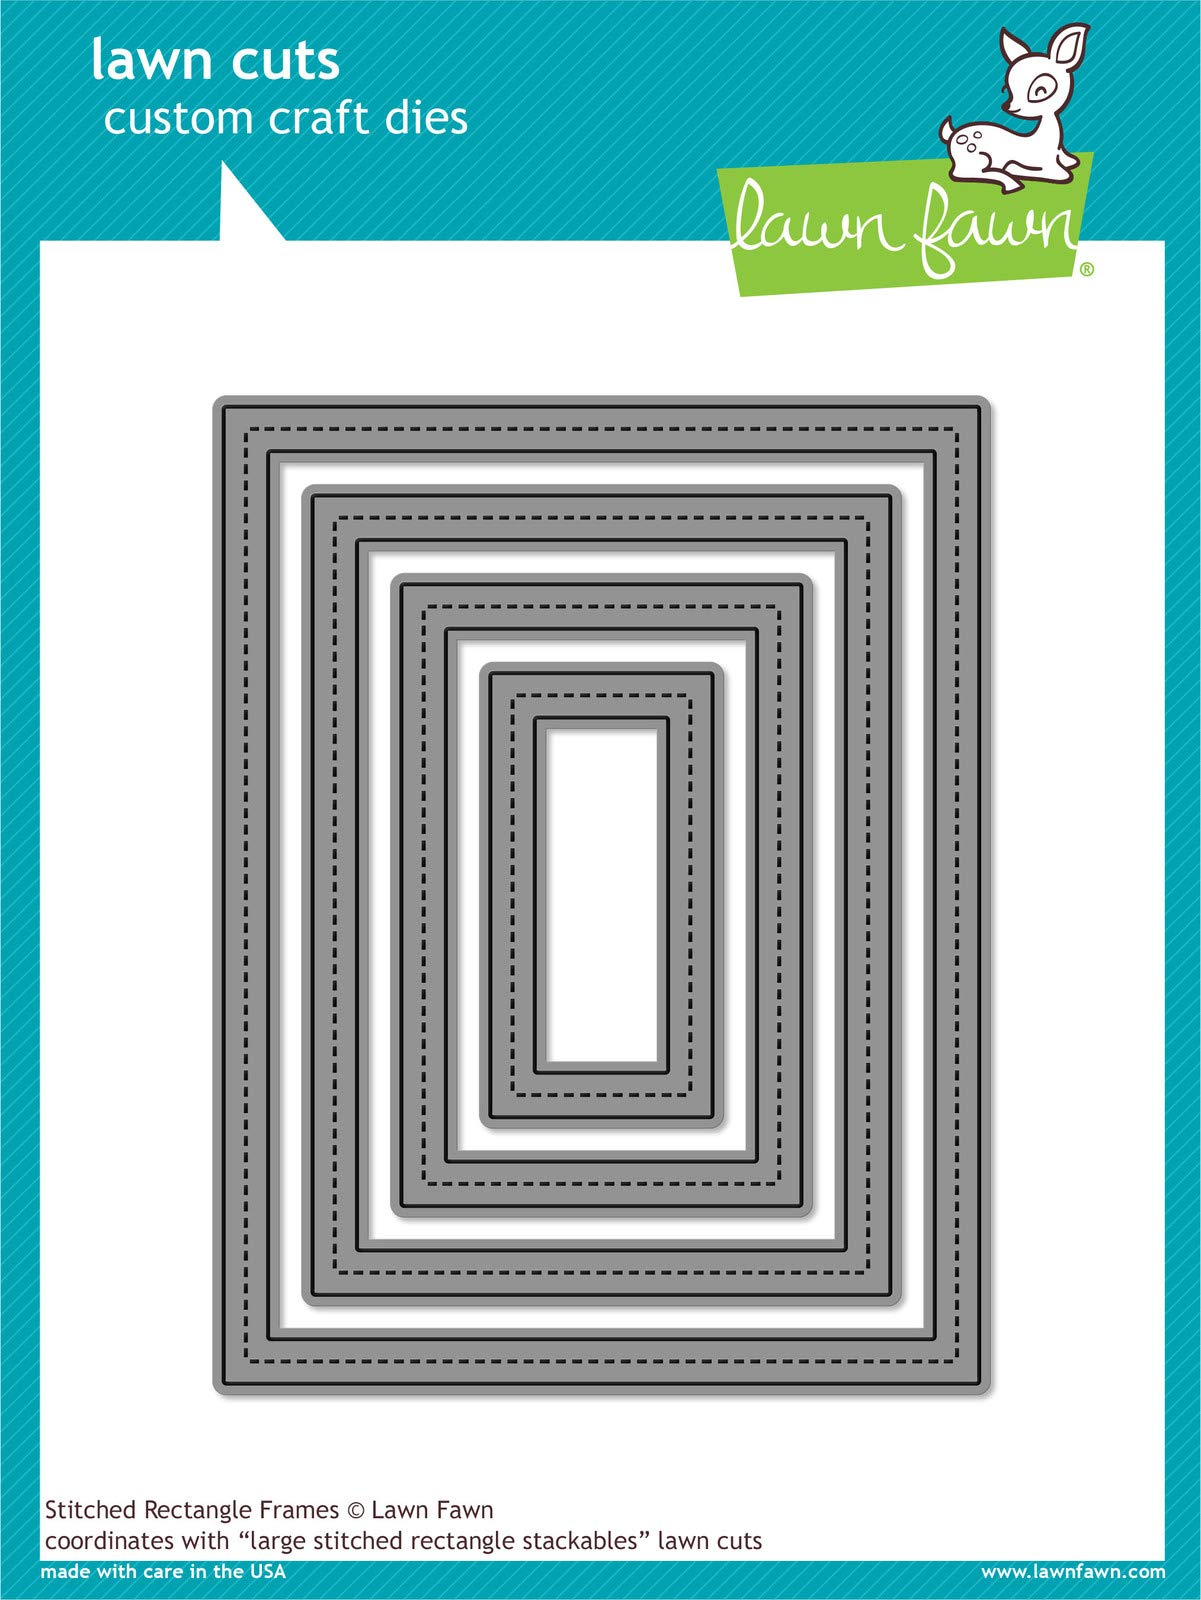 Lawn Fawn Die Cuts - Stitched Rectangle Frames